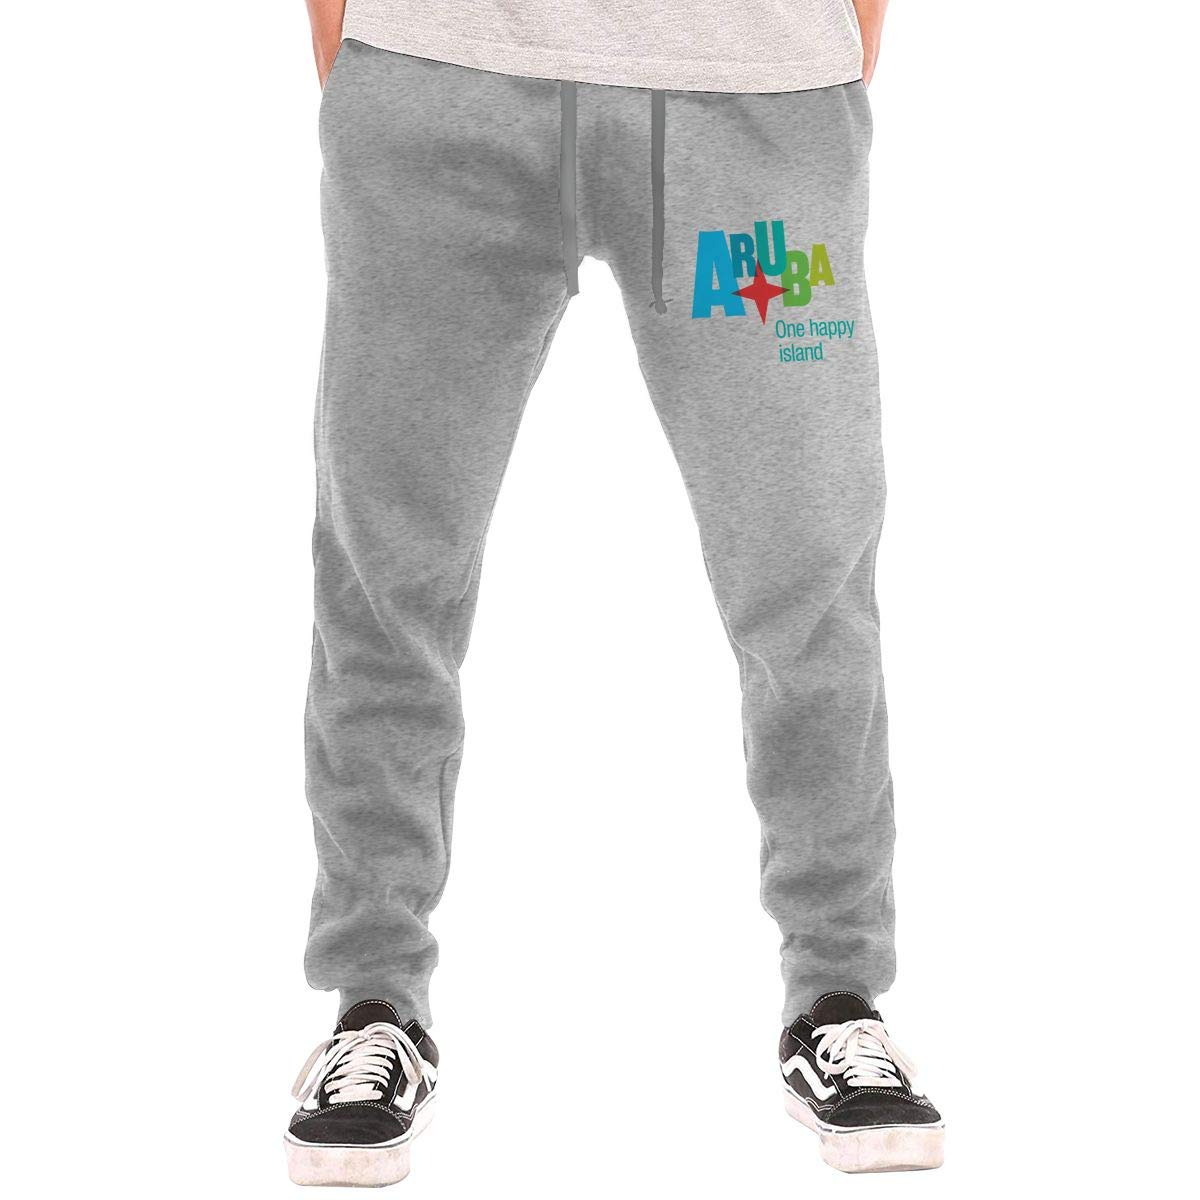 One Drawstring Waist,100/% Cotton,Elastic Waist Cuffed,Jogger Sweatpants